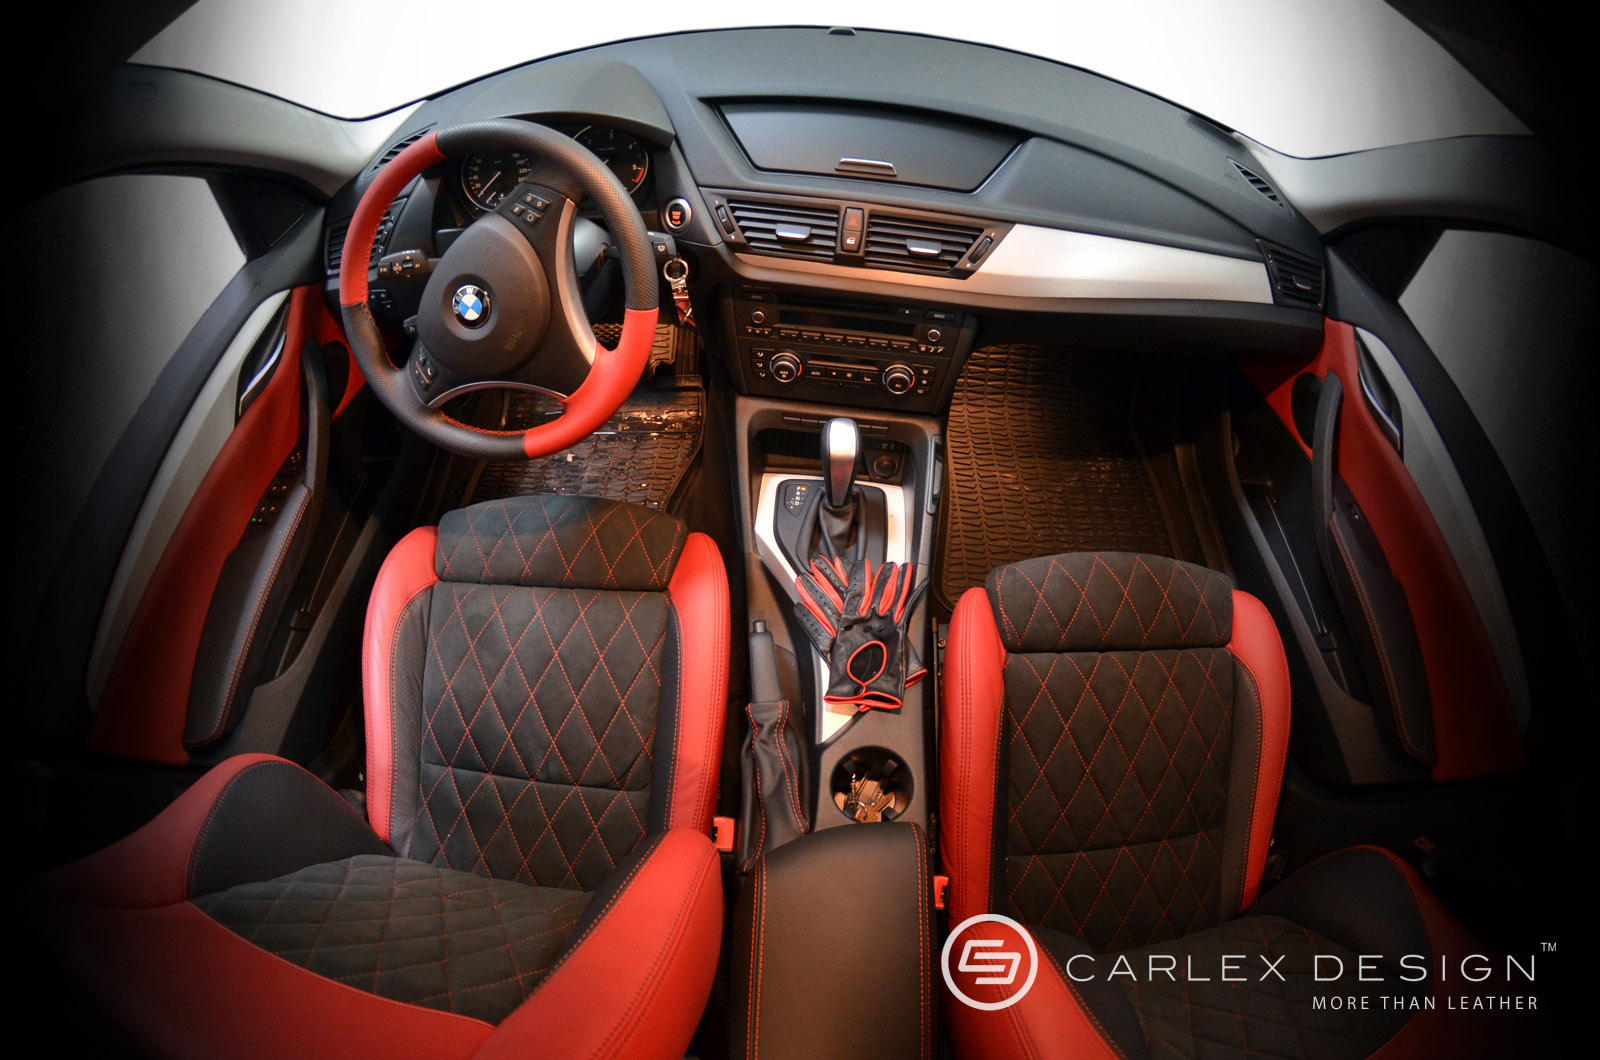 Take A Trip On The Wild Side With Carlex Design S Reinvented X1 Interior Autoevolution